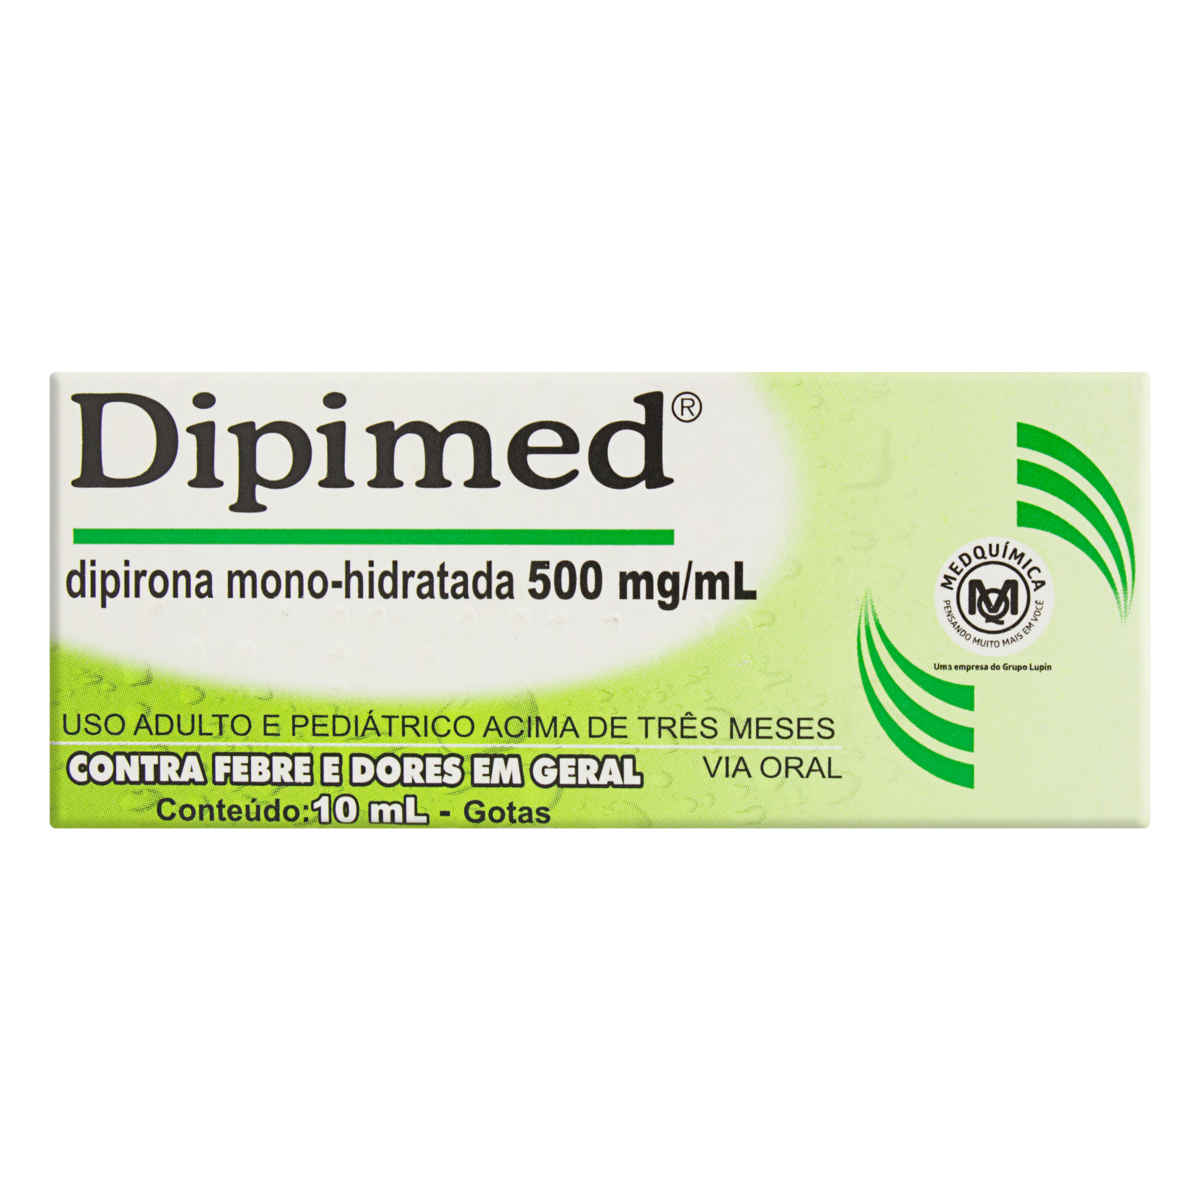 7896862940027 - DIPIMED 500 MG/ML GOTAS MEDQUÍMICA SIMILAR